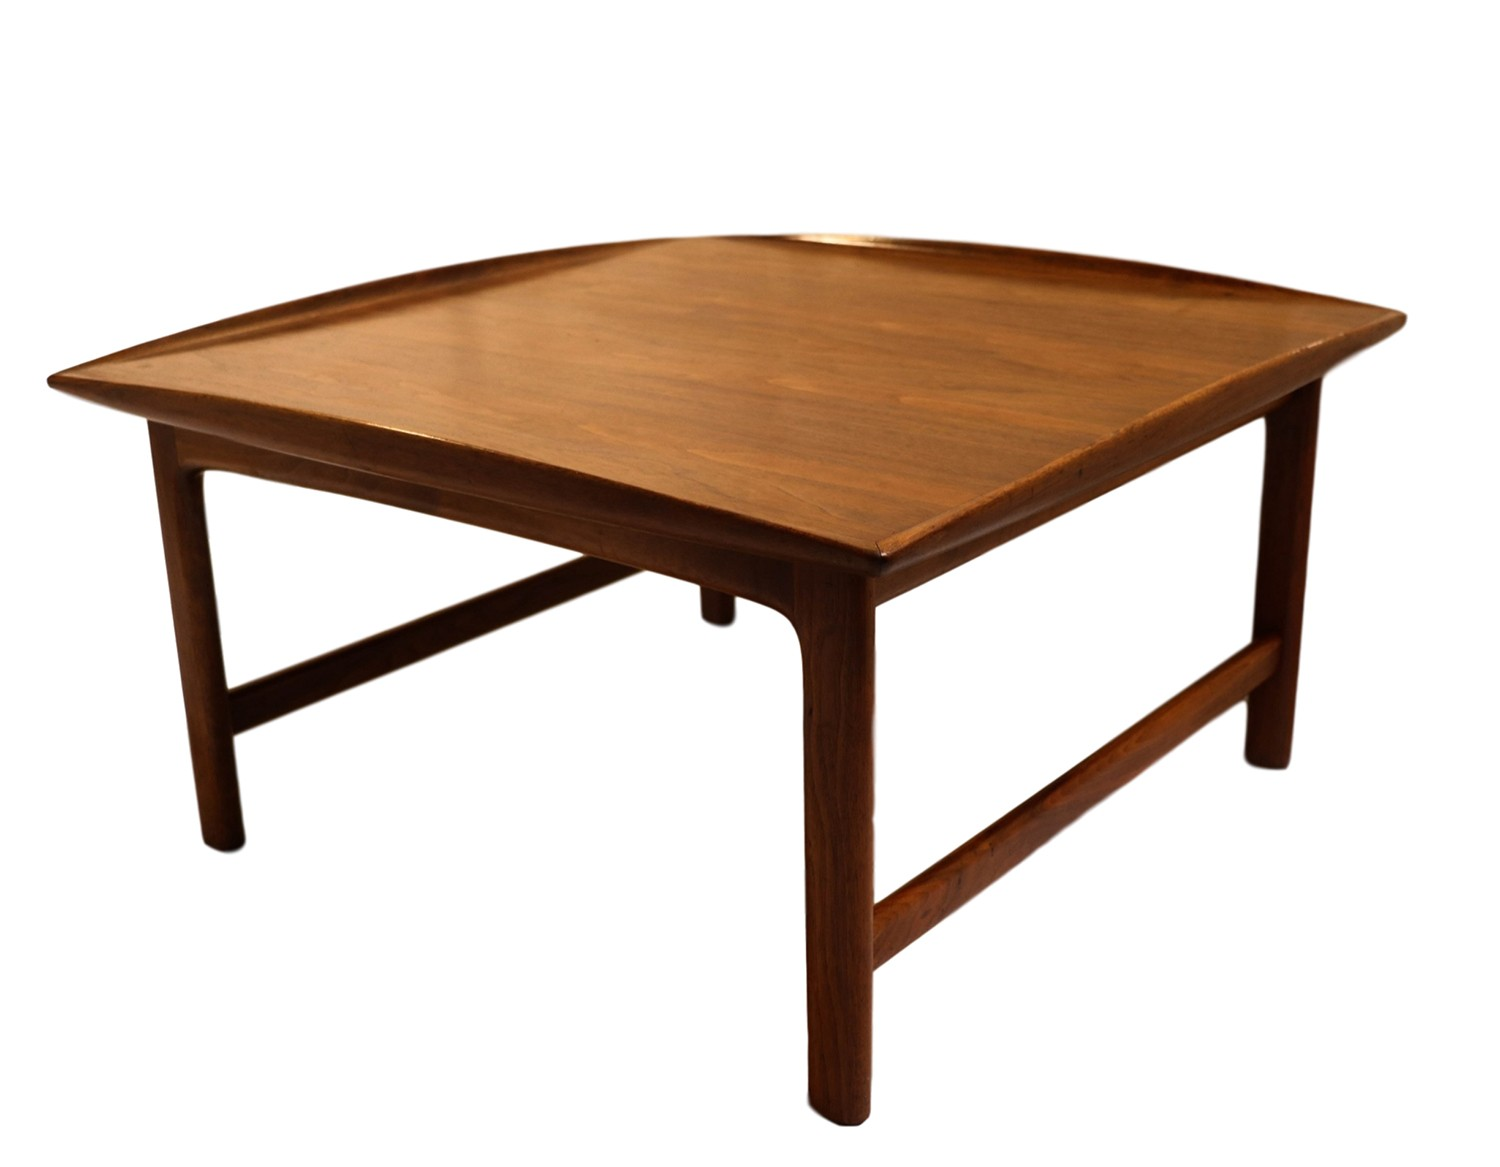 Mid century folke ohlsson coffee table for dux for K furniture coffee table